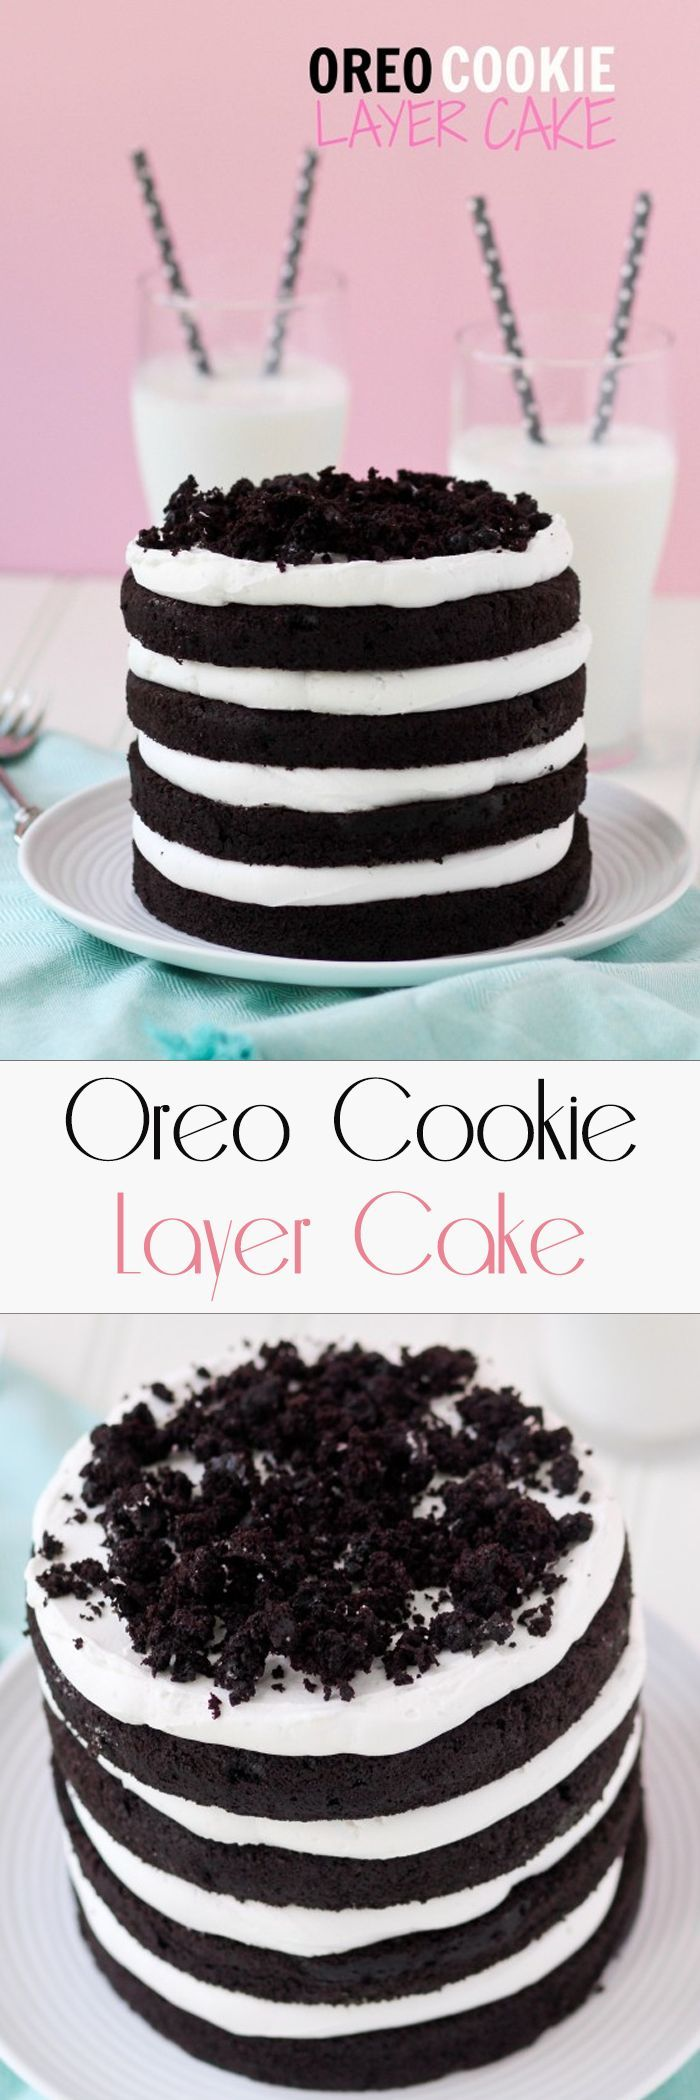 OREO COOKIE LAYER CAKE like biting into layers of a giant soft Oreo! The chocolate cake is full of Oreo crumbs and the frosting is actually OREO FILLING. This is too good to be true -- an Oreo lover's dream cake.